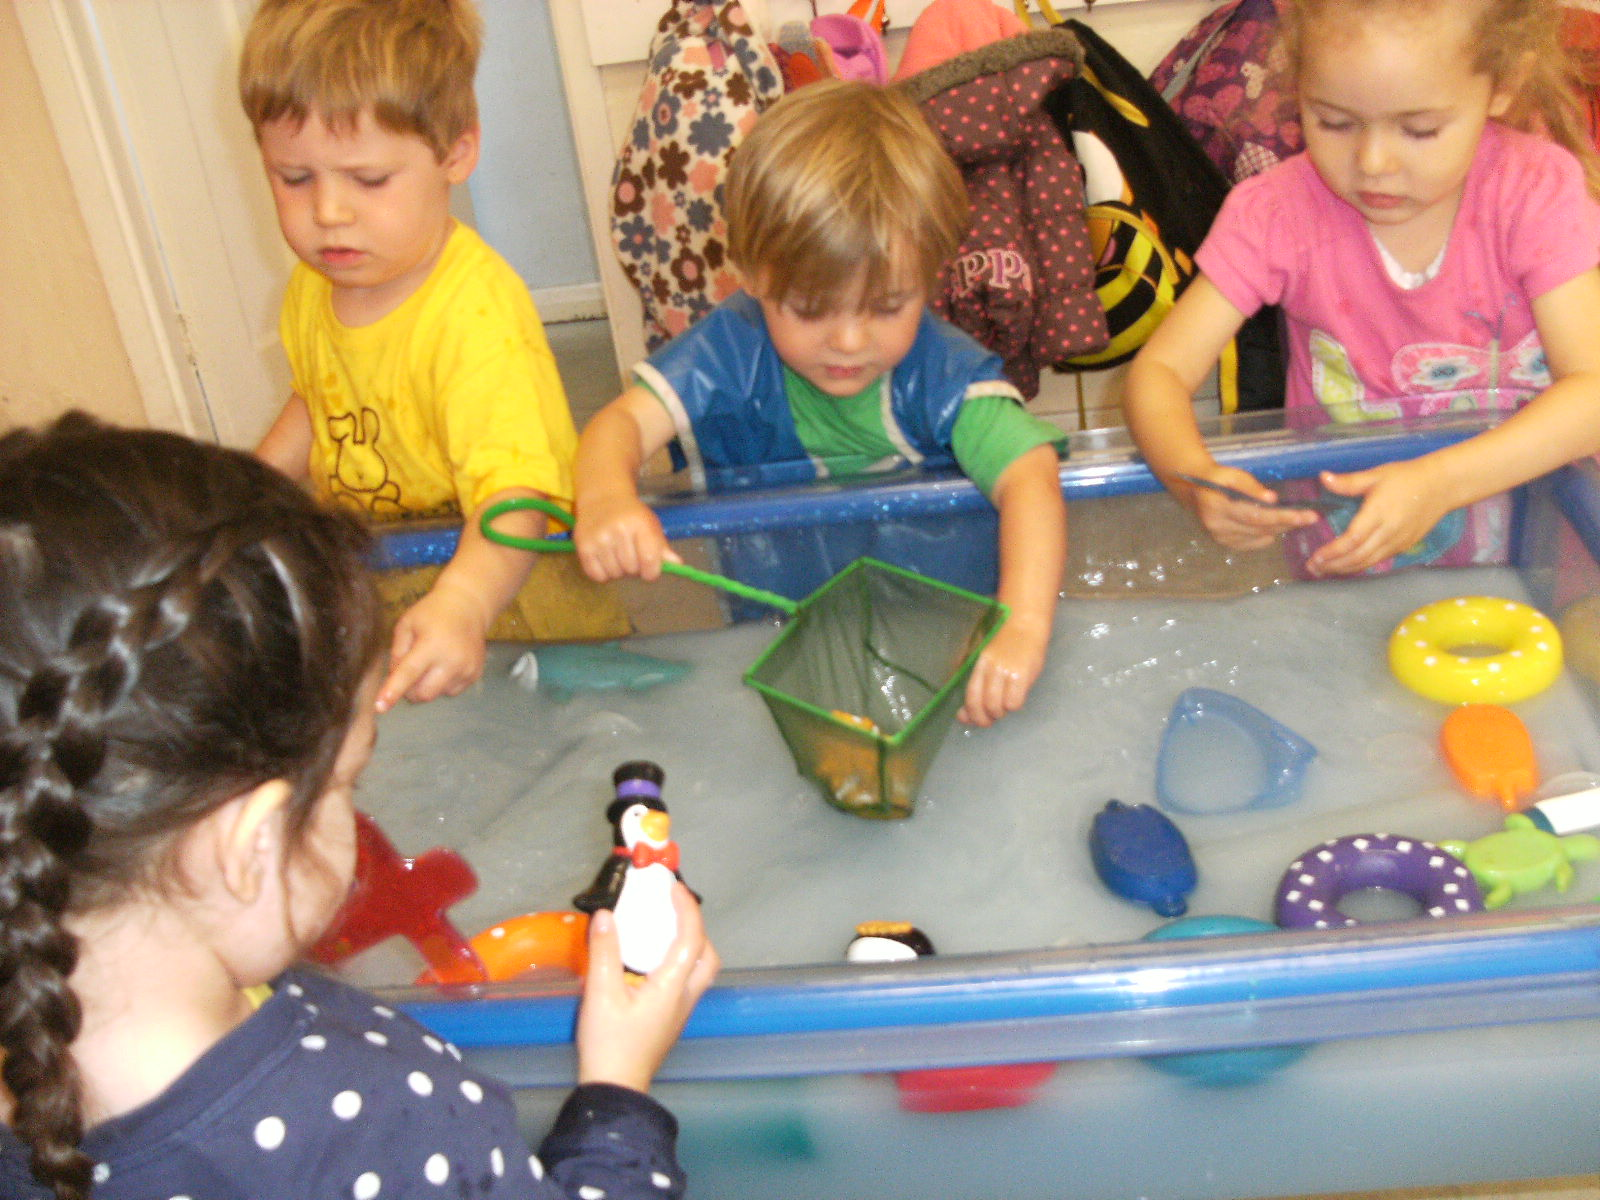 Indoor messy play